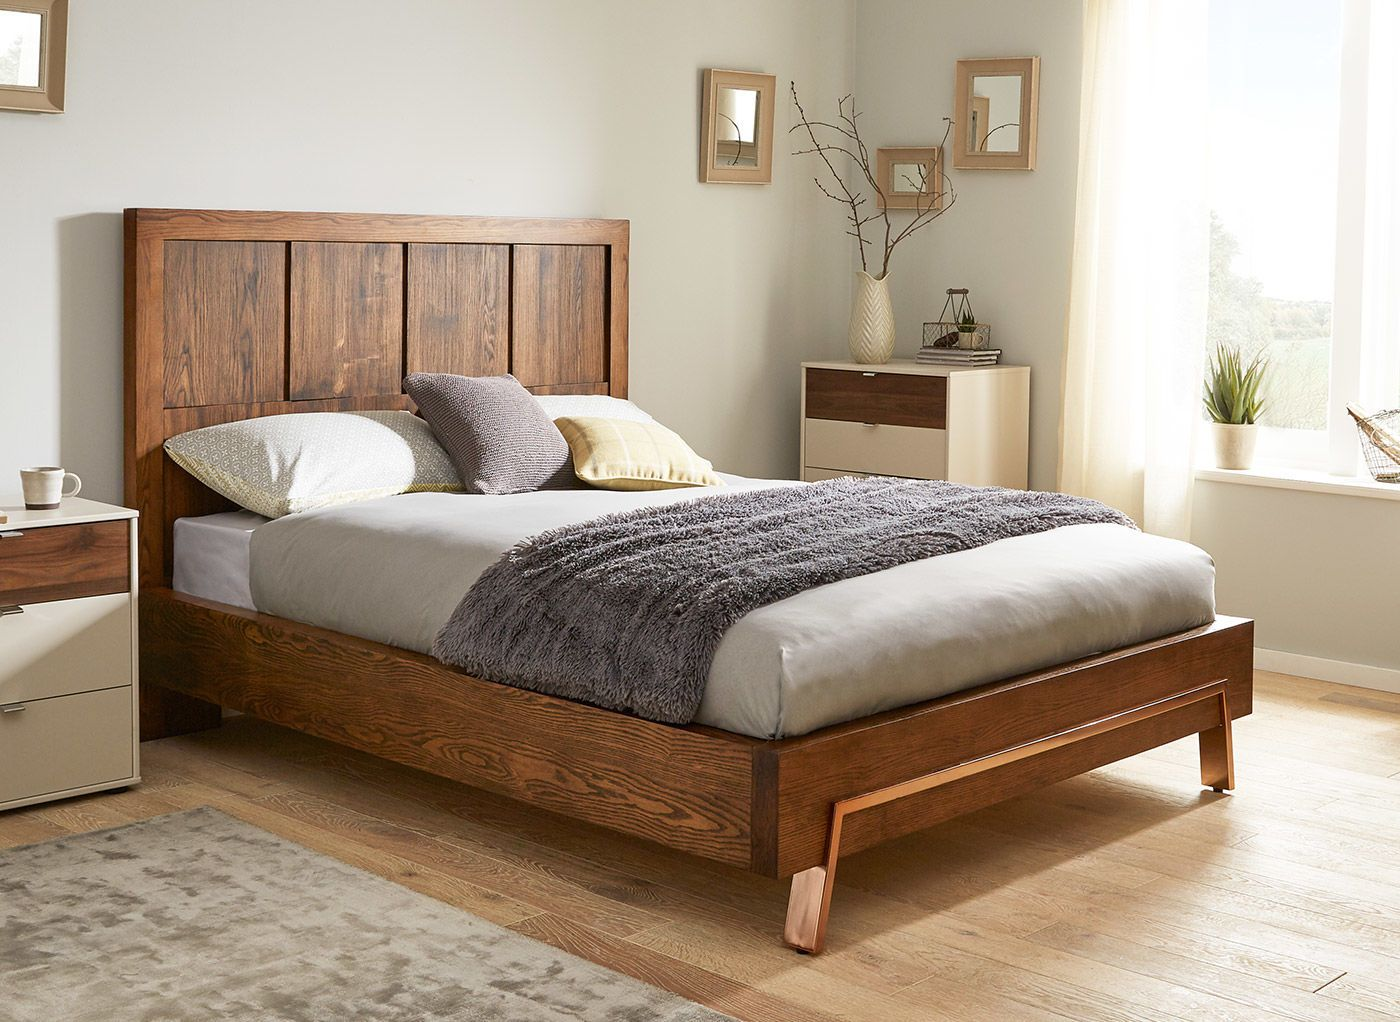 With A Grand Panelled Dark Wood Headboard And On Trend Copper Detailed Legs  And Foot End, The Grant Bed Frame Offers A Stylish Twist On A Traditional  ...